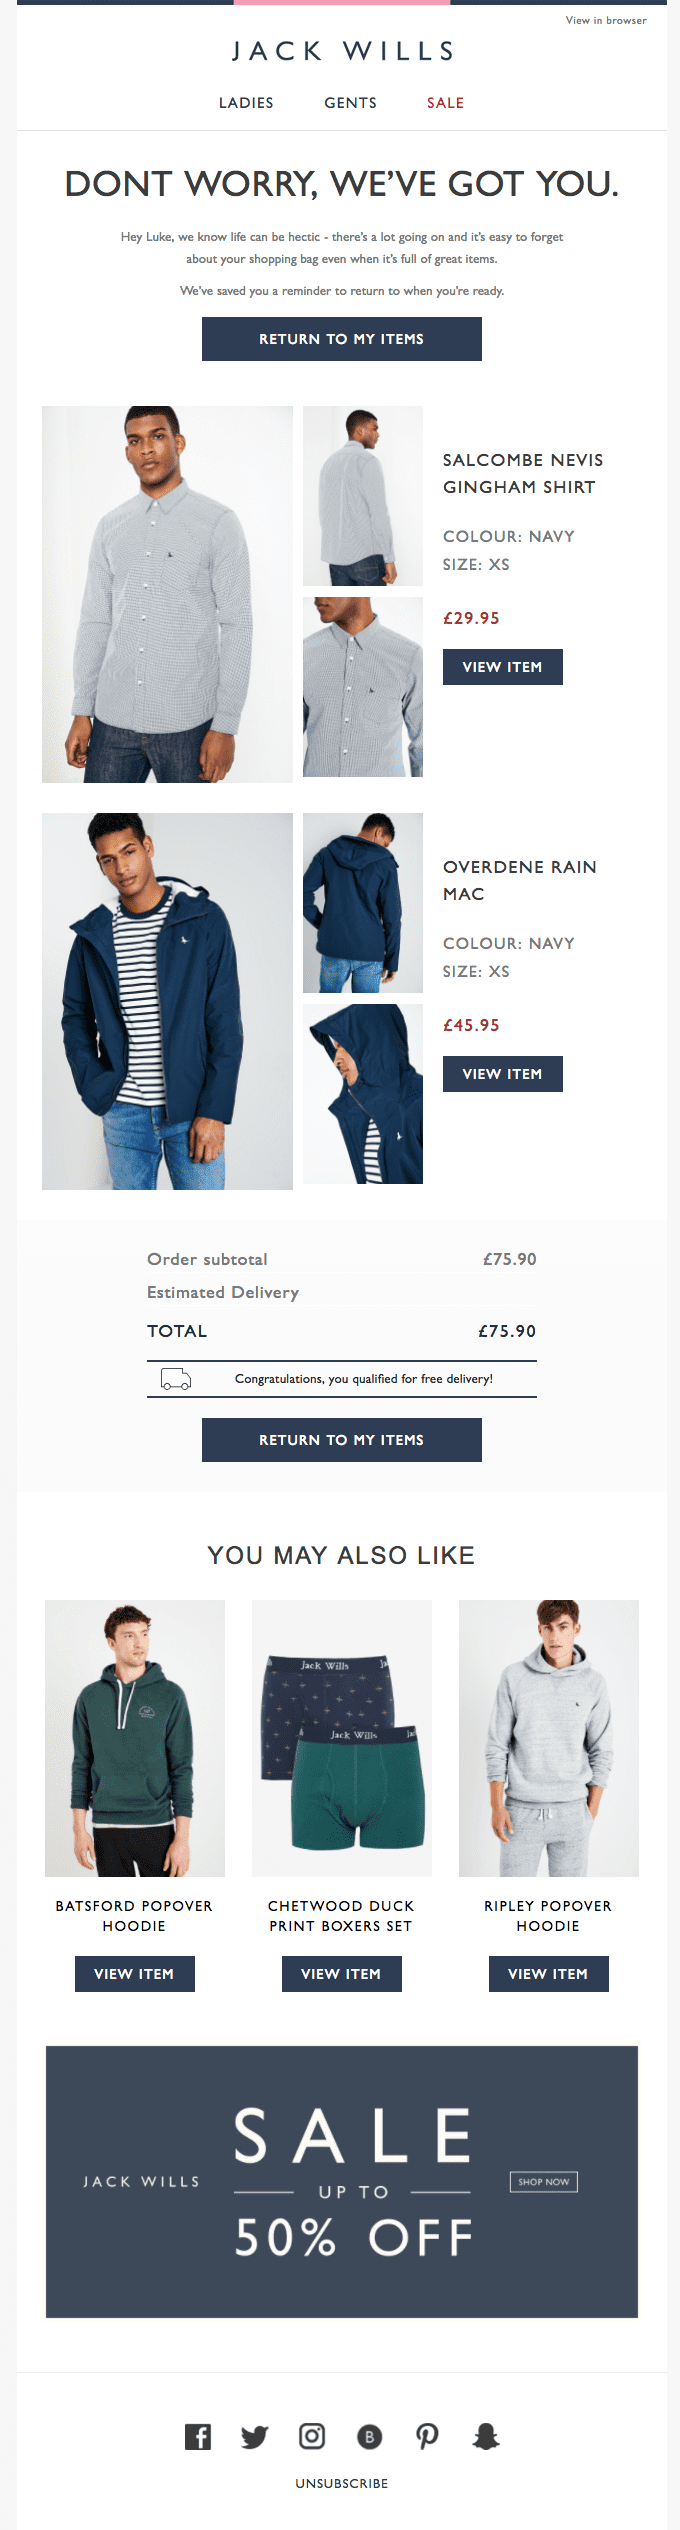 Jack Wills cart abandonment email campaign